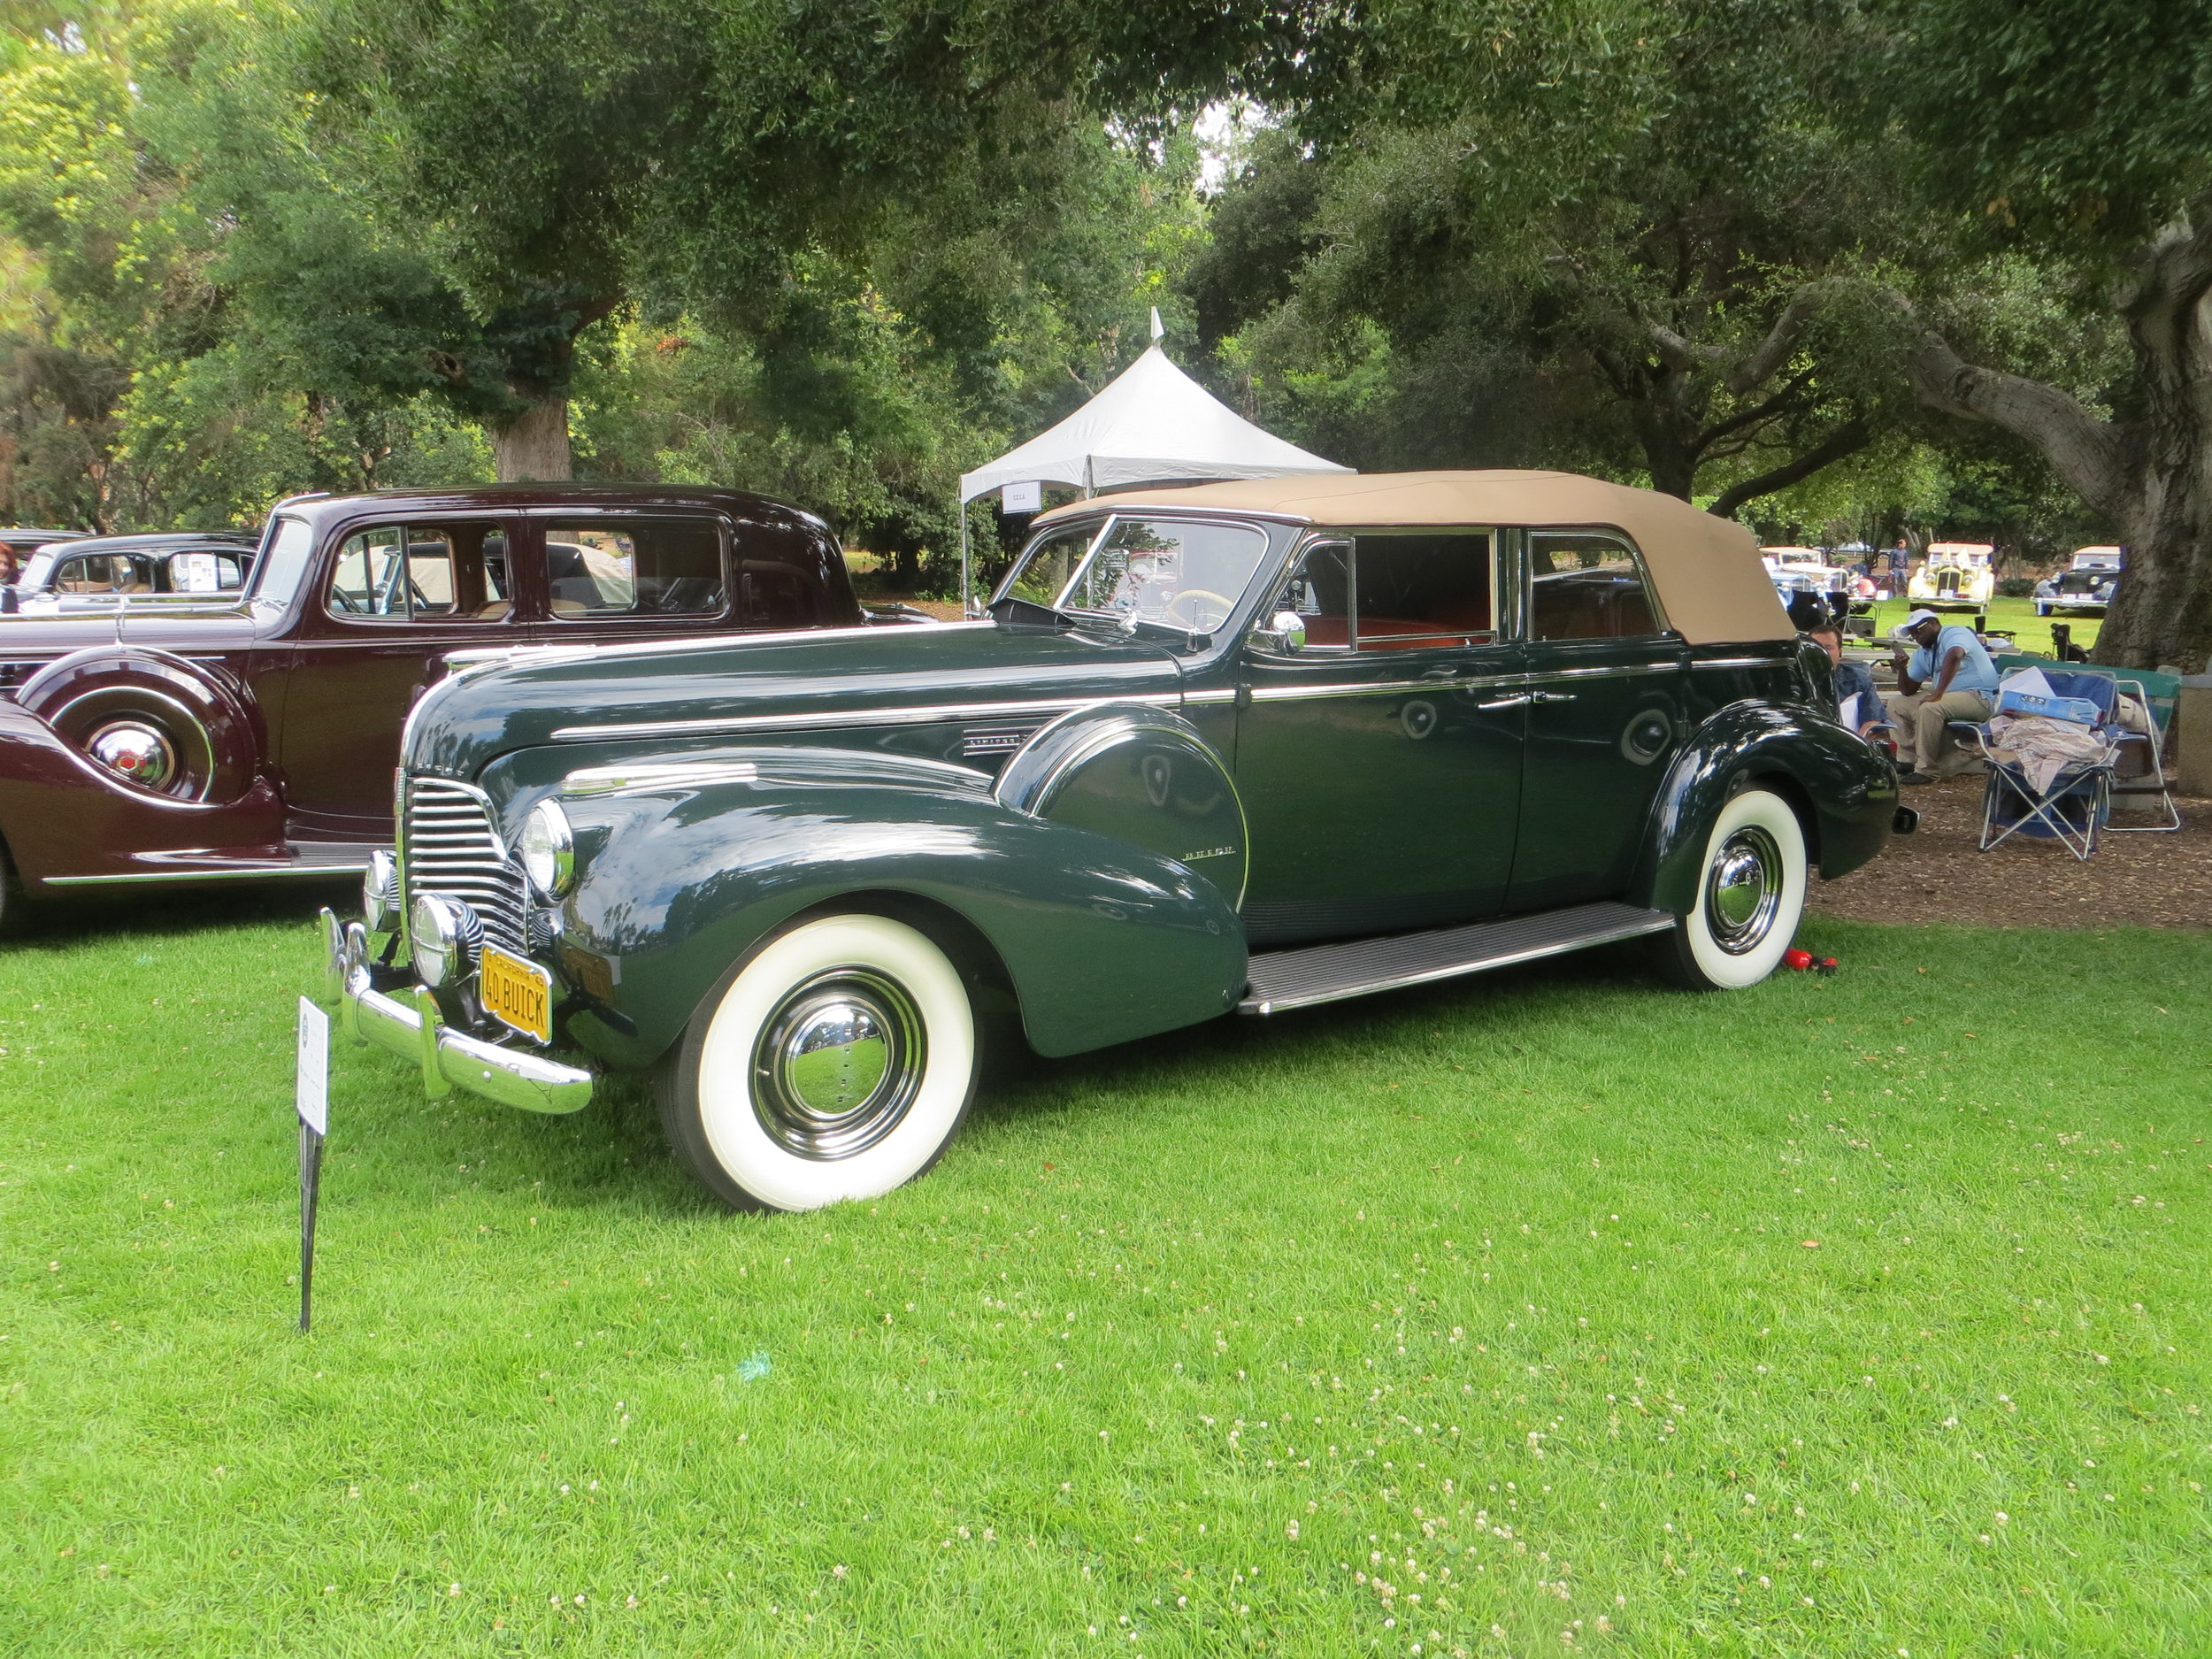 1940 Buick 80 Limited Convertible Sedan Michael Porto.JPG